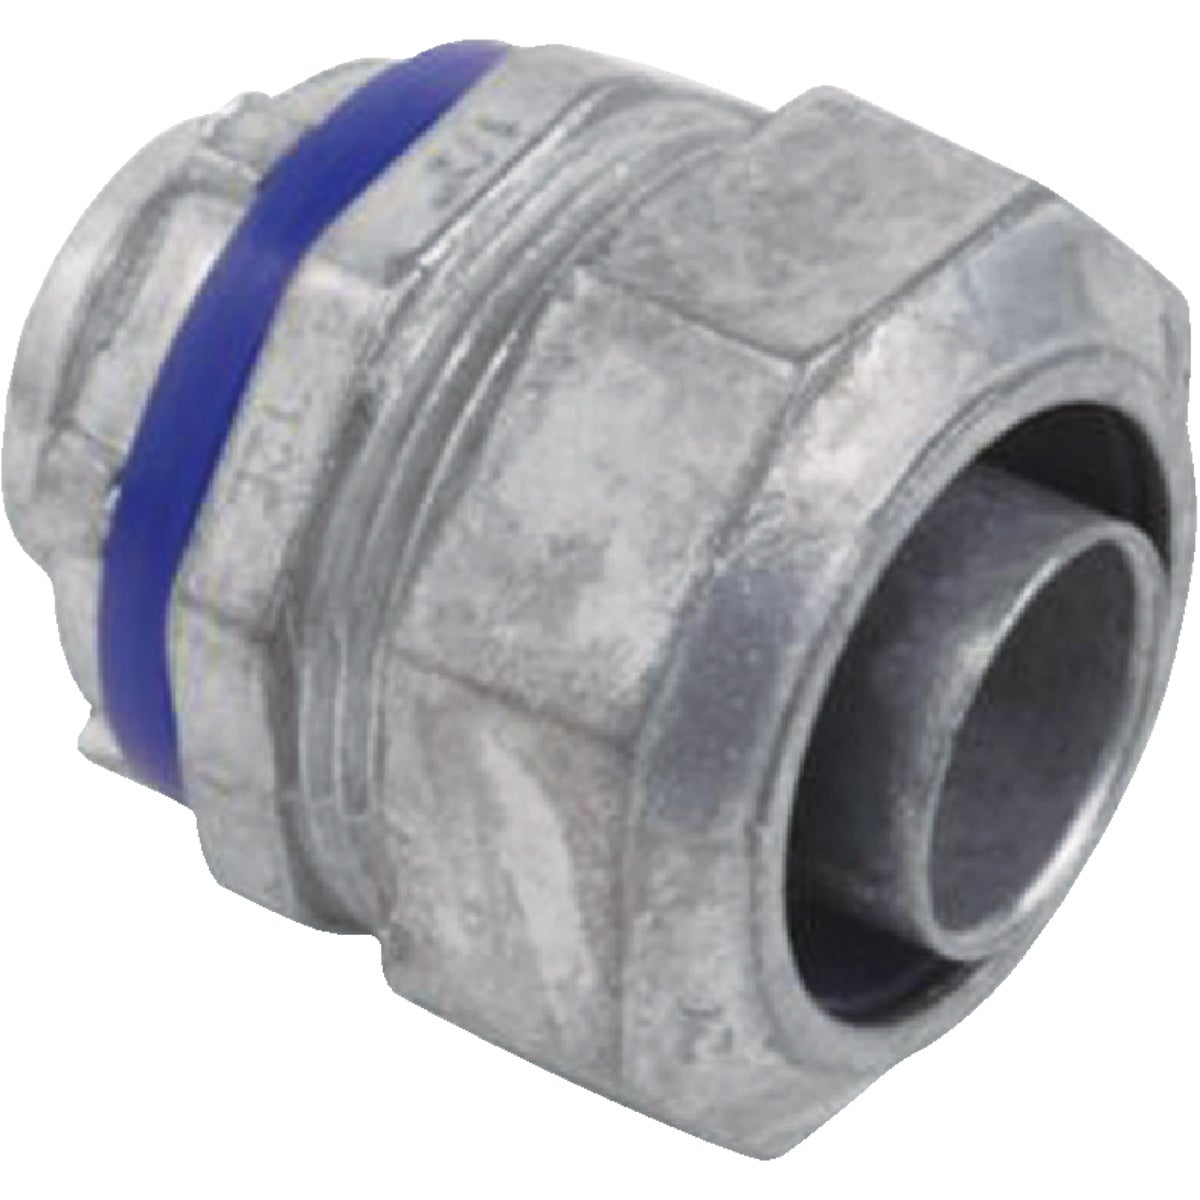 "1/2"" LIQTITE CONNECTOR - LT2011 by Thomas & Betts"